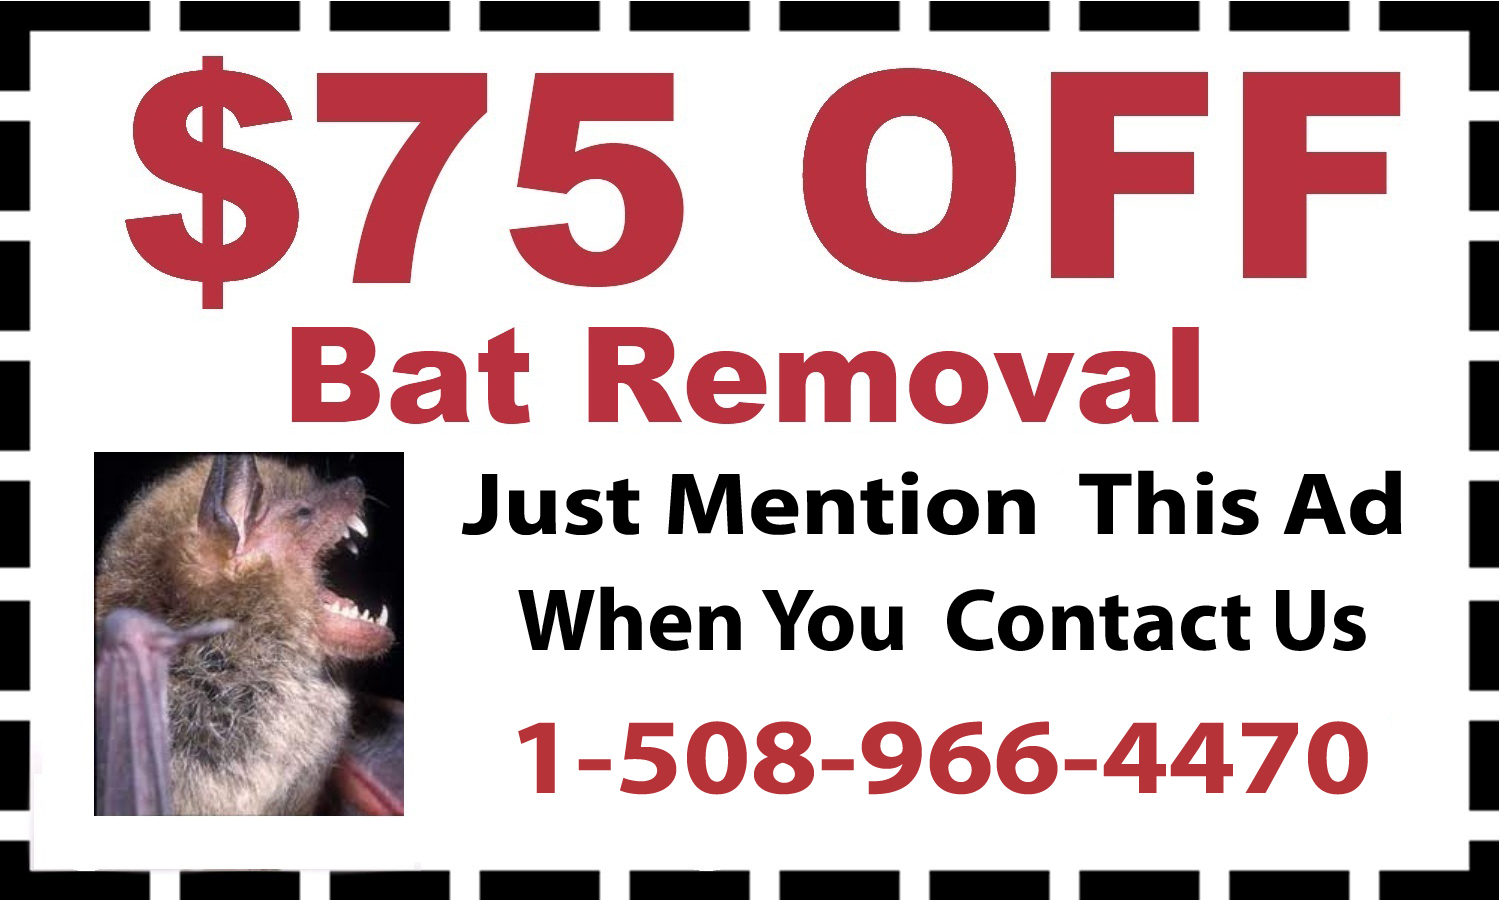 Bat Removal Hopedale, MA